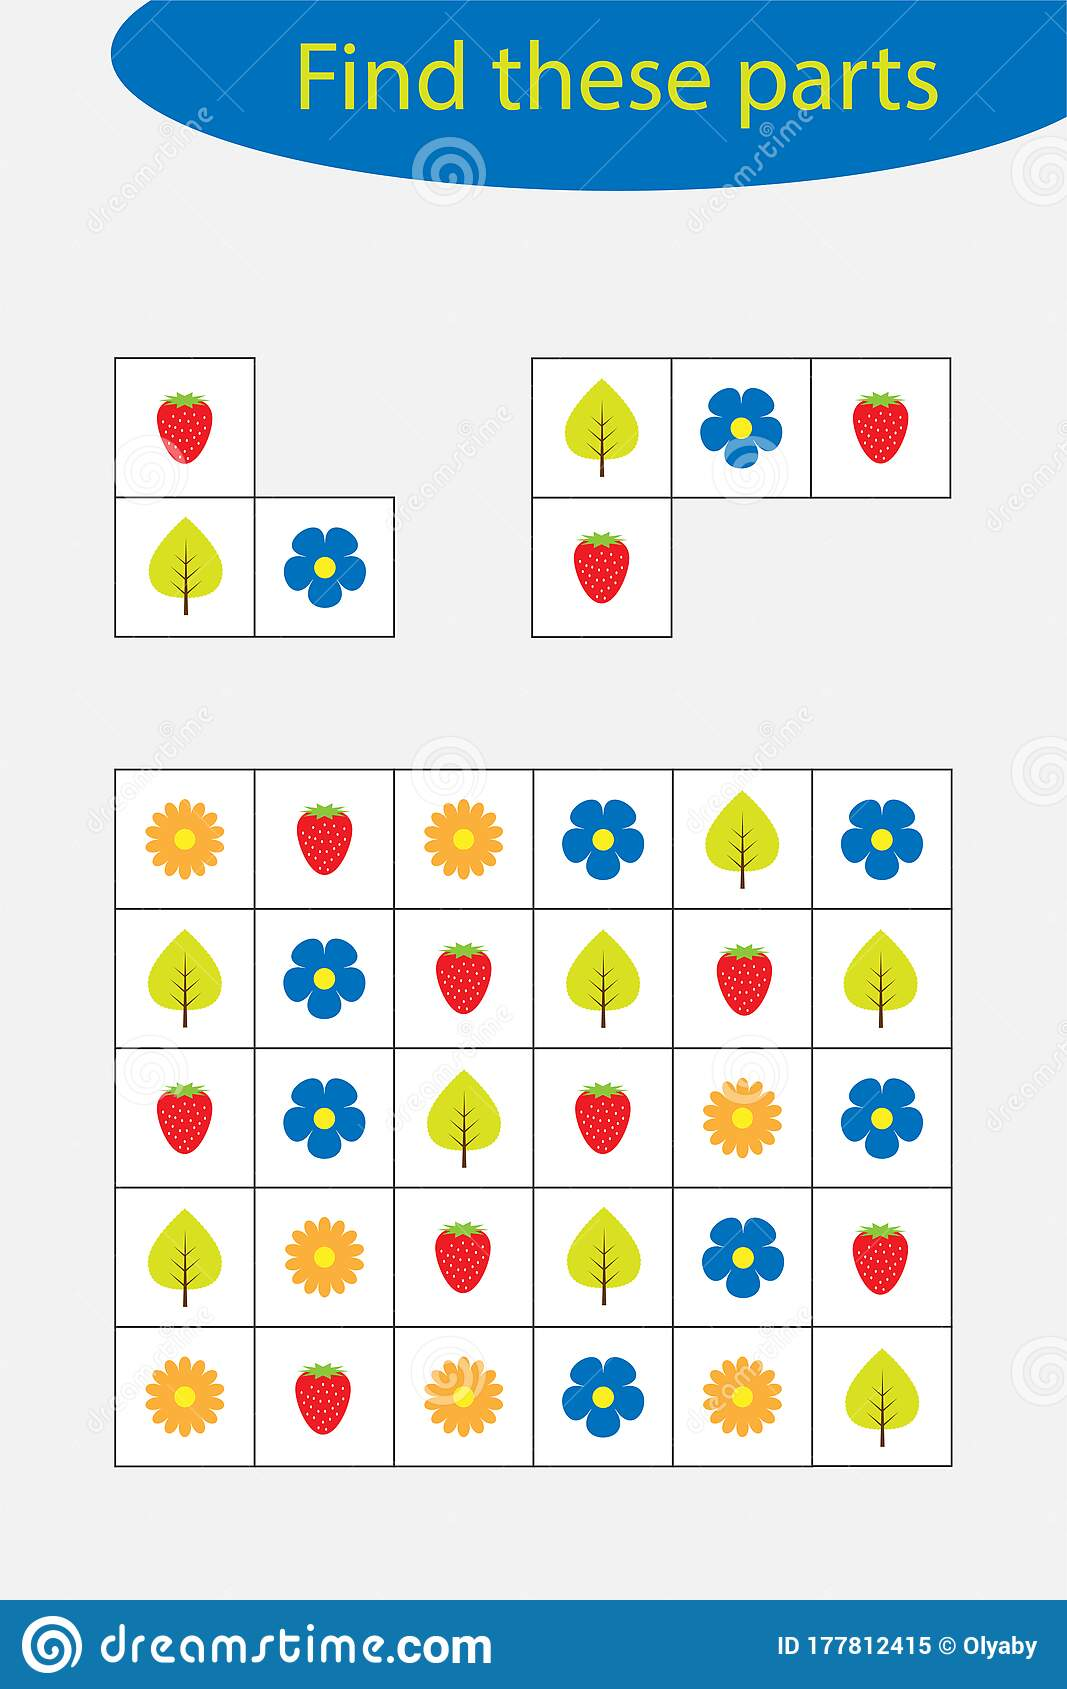 Find The Parts Of The Cover Fun Education Game For